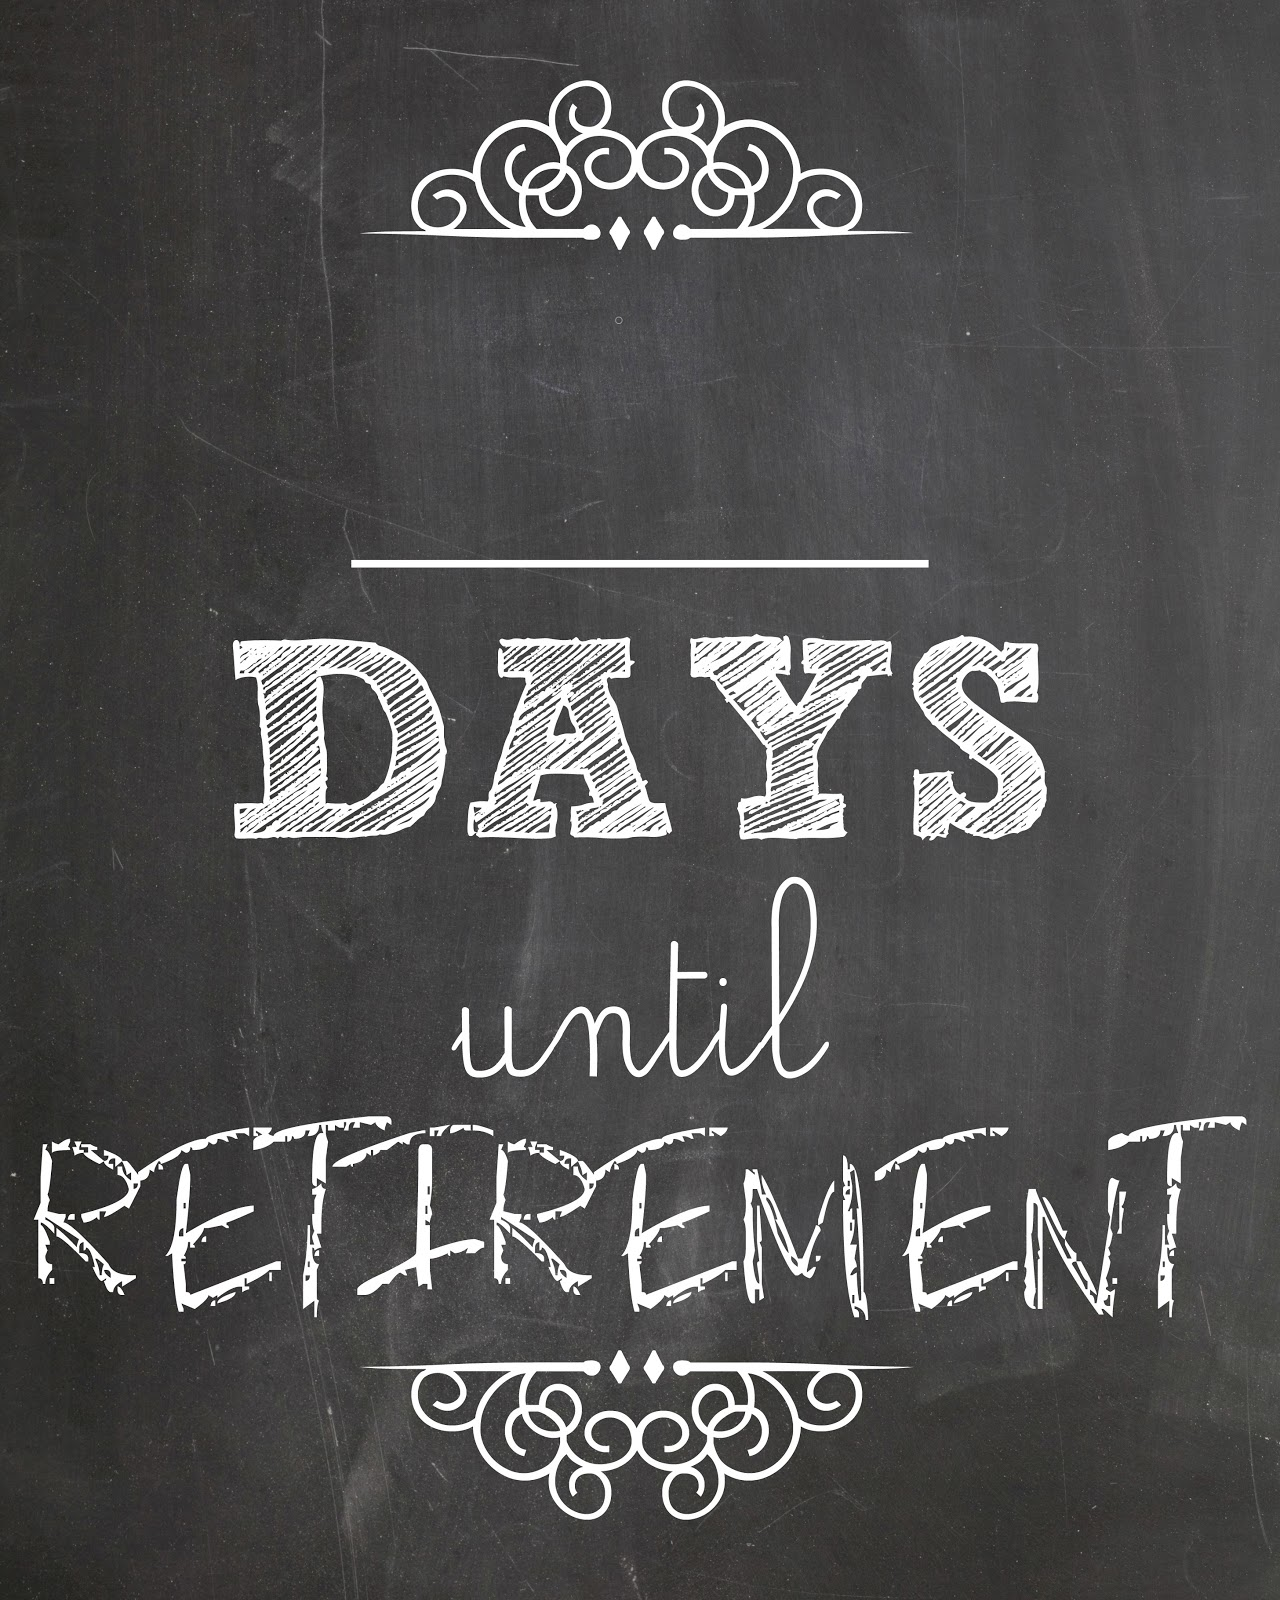 Printable Countdown Calendar For Retirement | Search Results ...